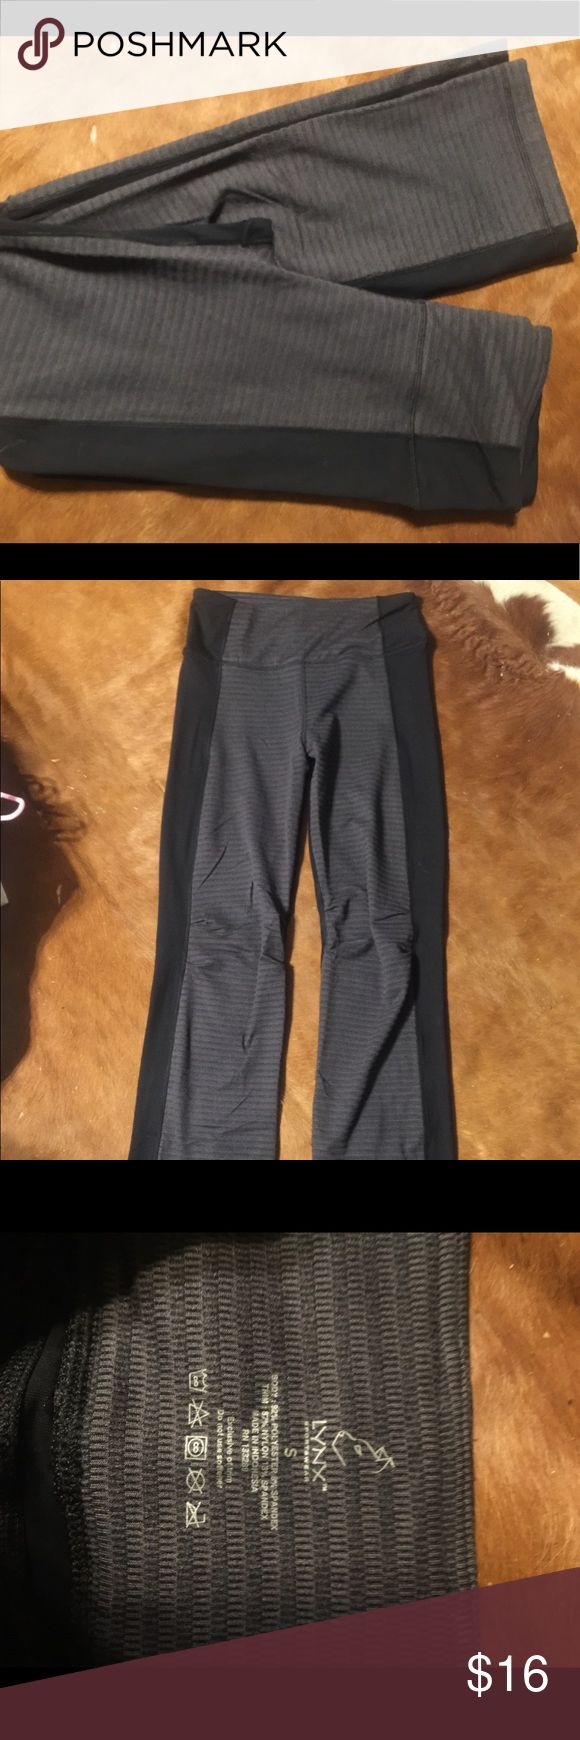 EUC Lynx Sz S bootcut leggings Great pair of bootcut leggings with a bit of extra room in the knees to help with those hard to hit yoga poses!! Two toned black and gray and they have a small back pocket across the waist band for keys or cash etc. Sz S Pants Leggings